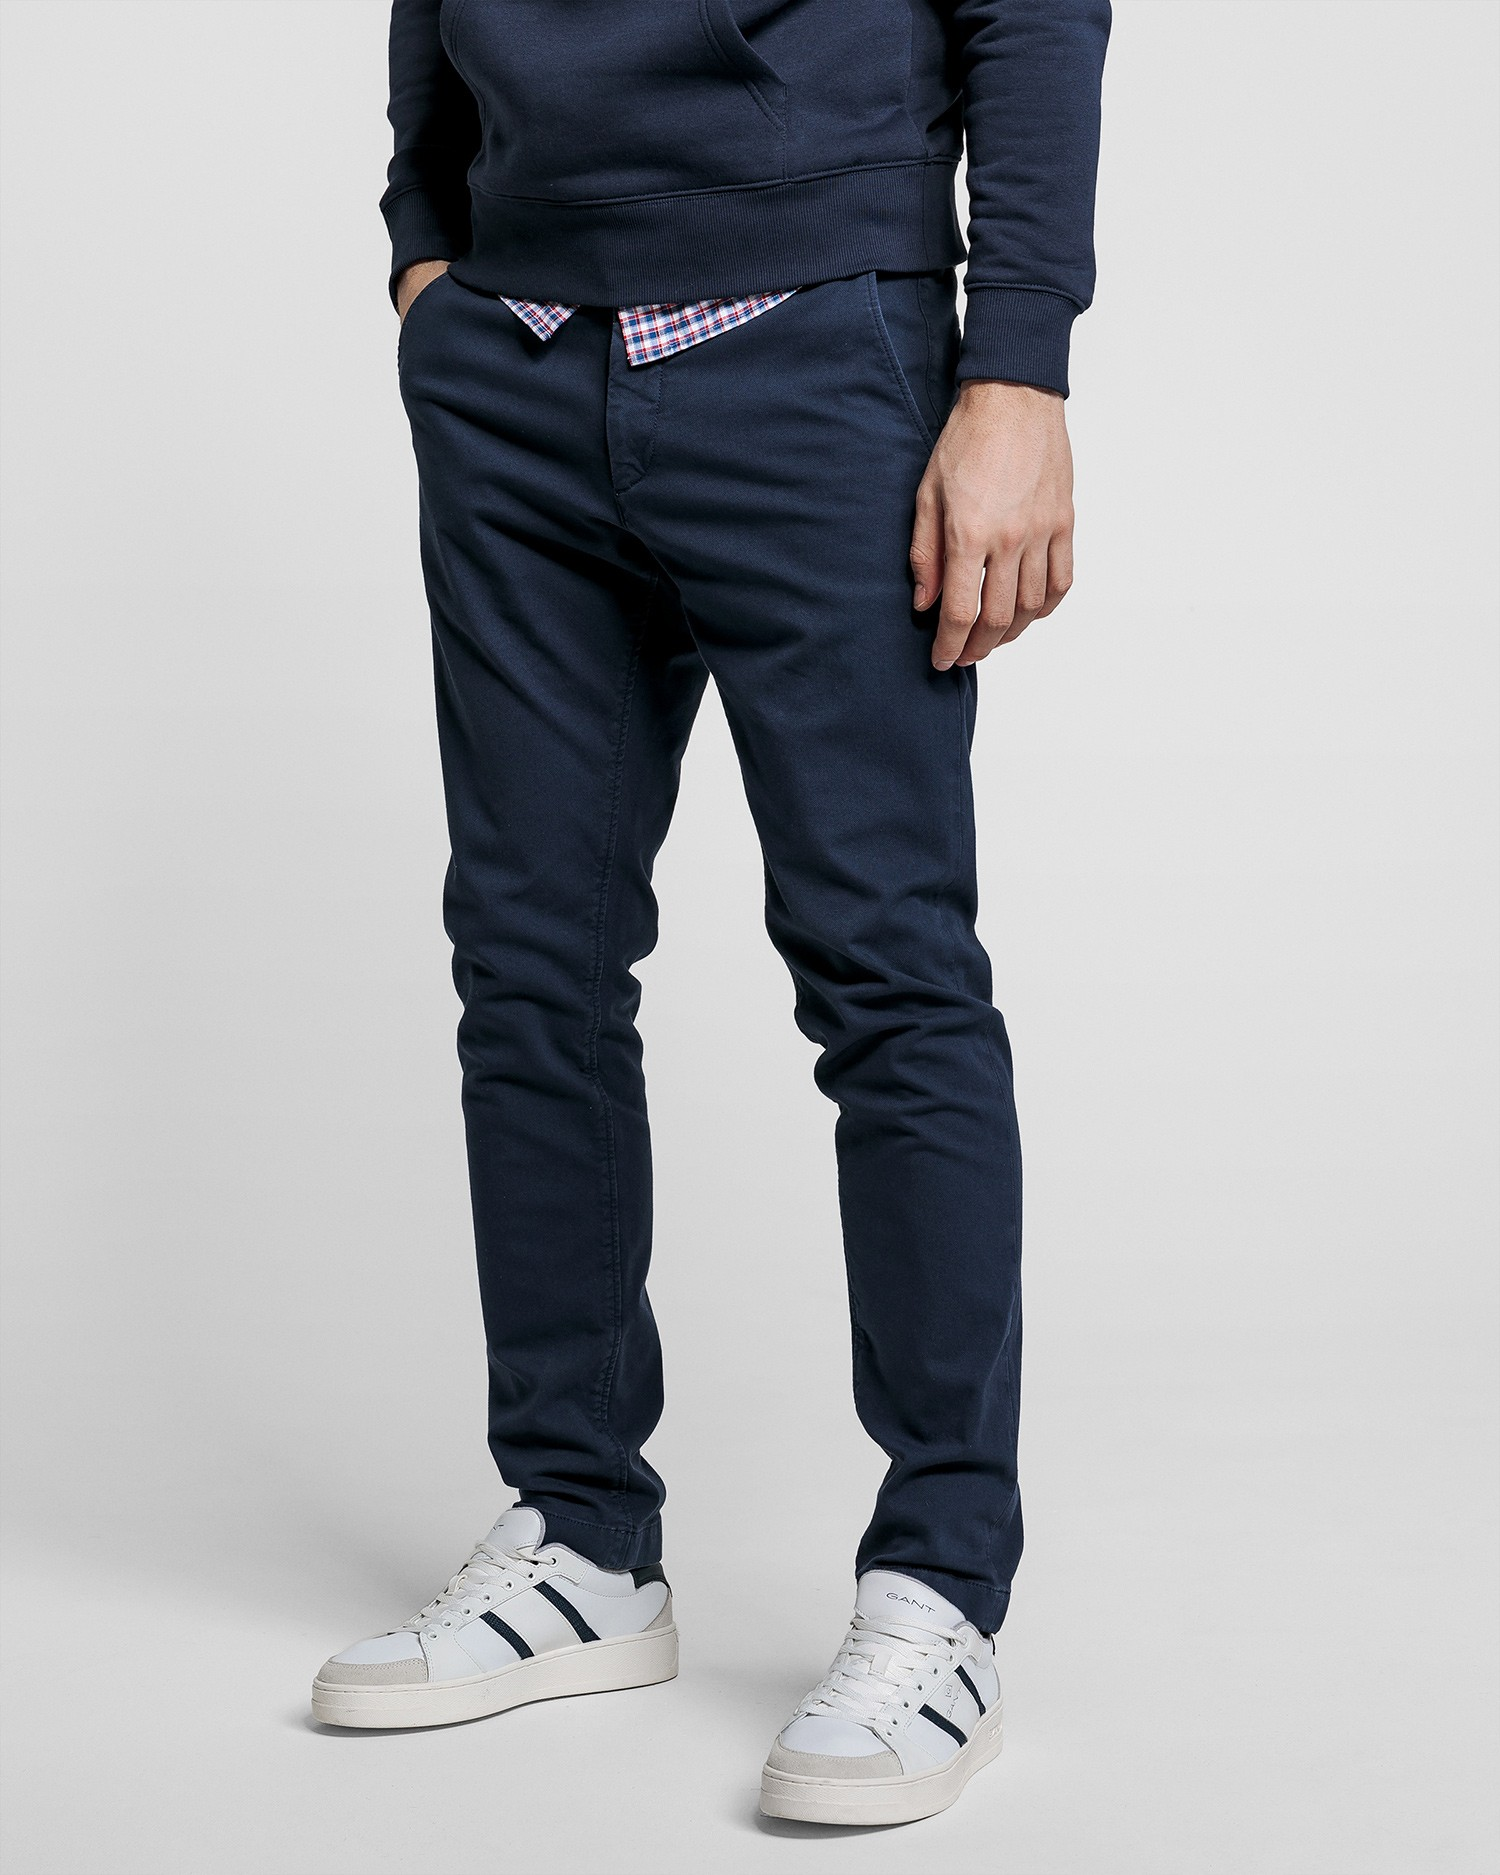 GANT Chinosy Męskie Z Twillu Slim Fit - 1500178